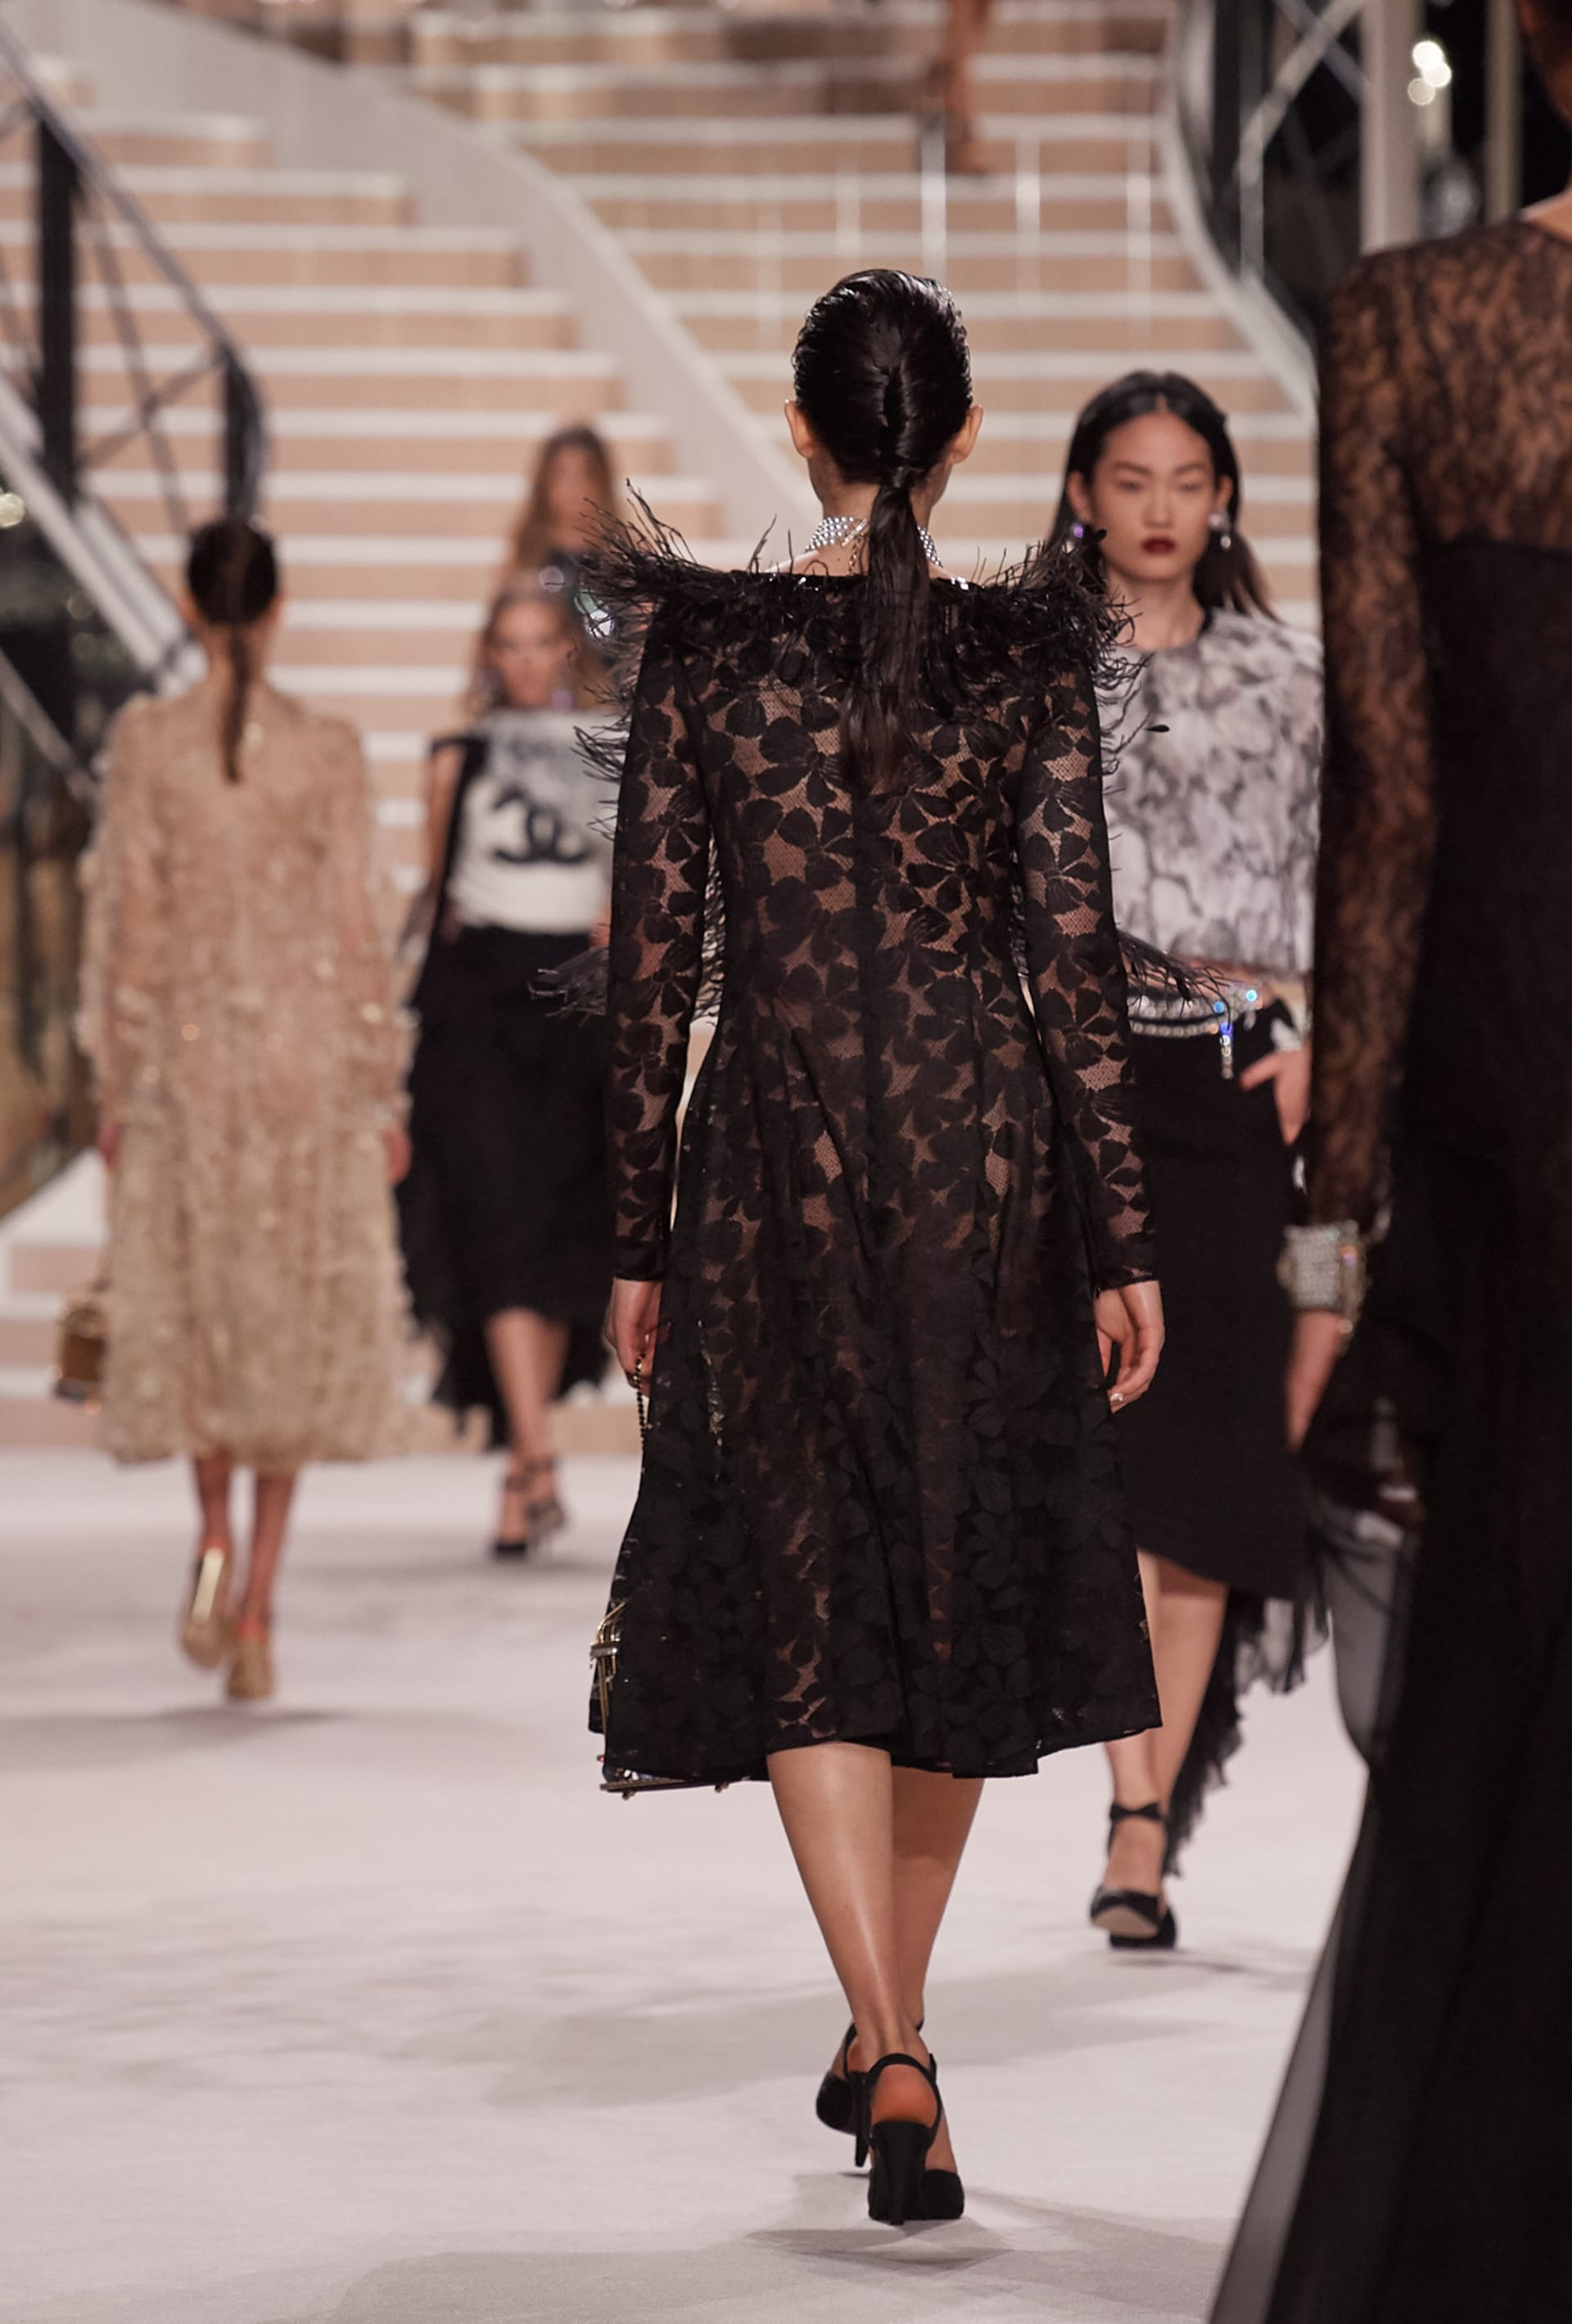 View 3 - Look 57 - Métiers d'Art 2019/20 - 查看全尺寸版本